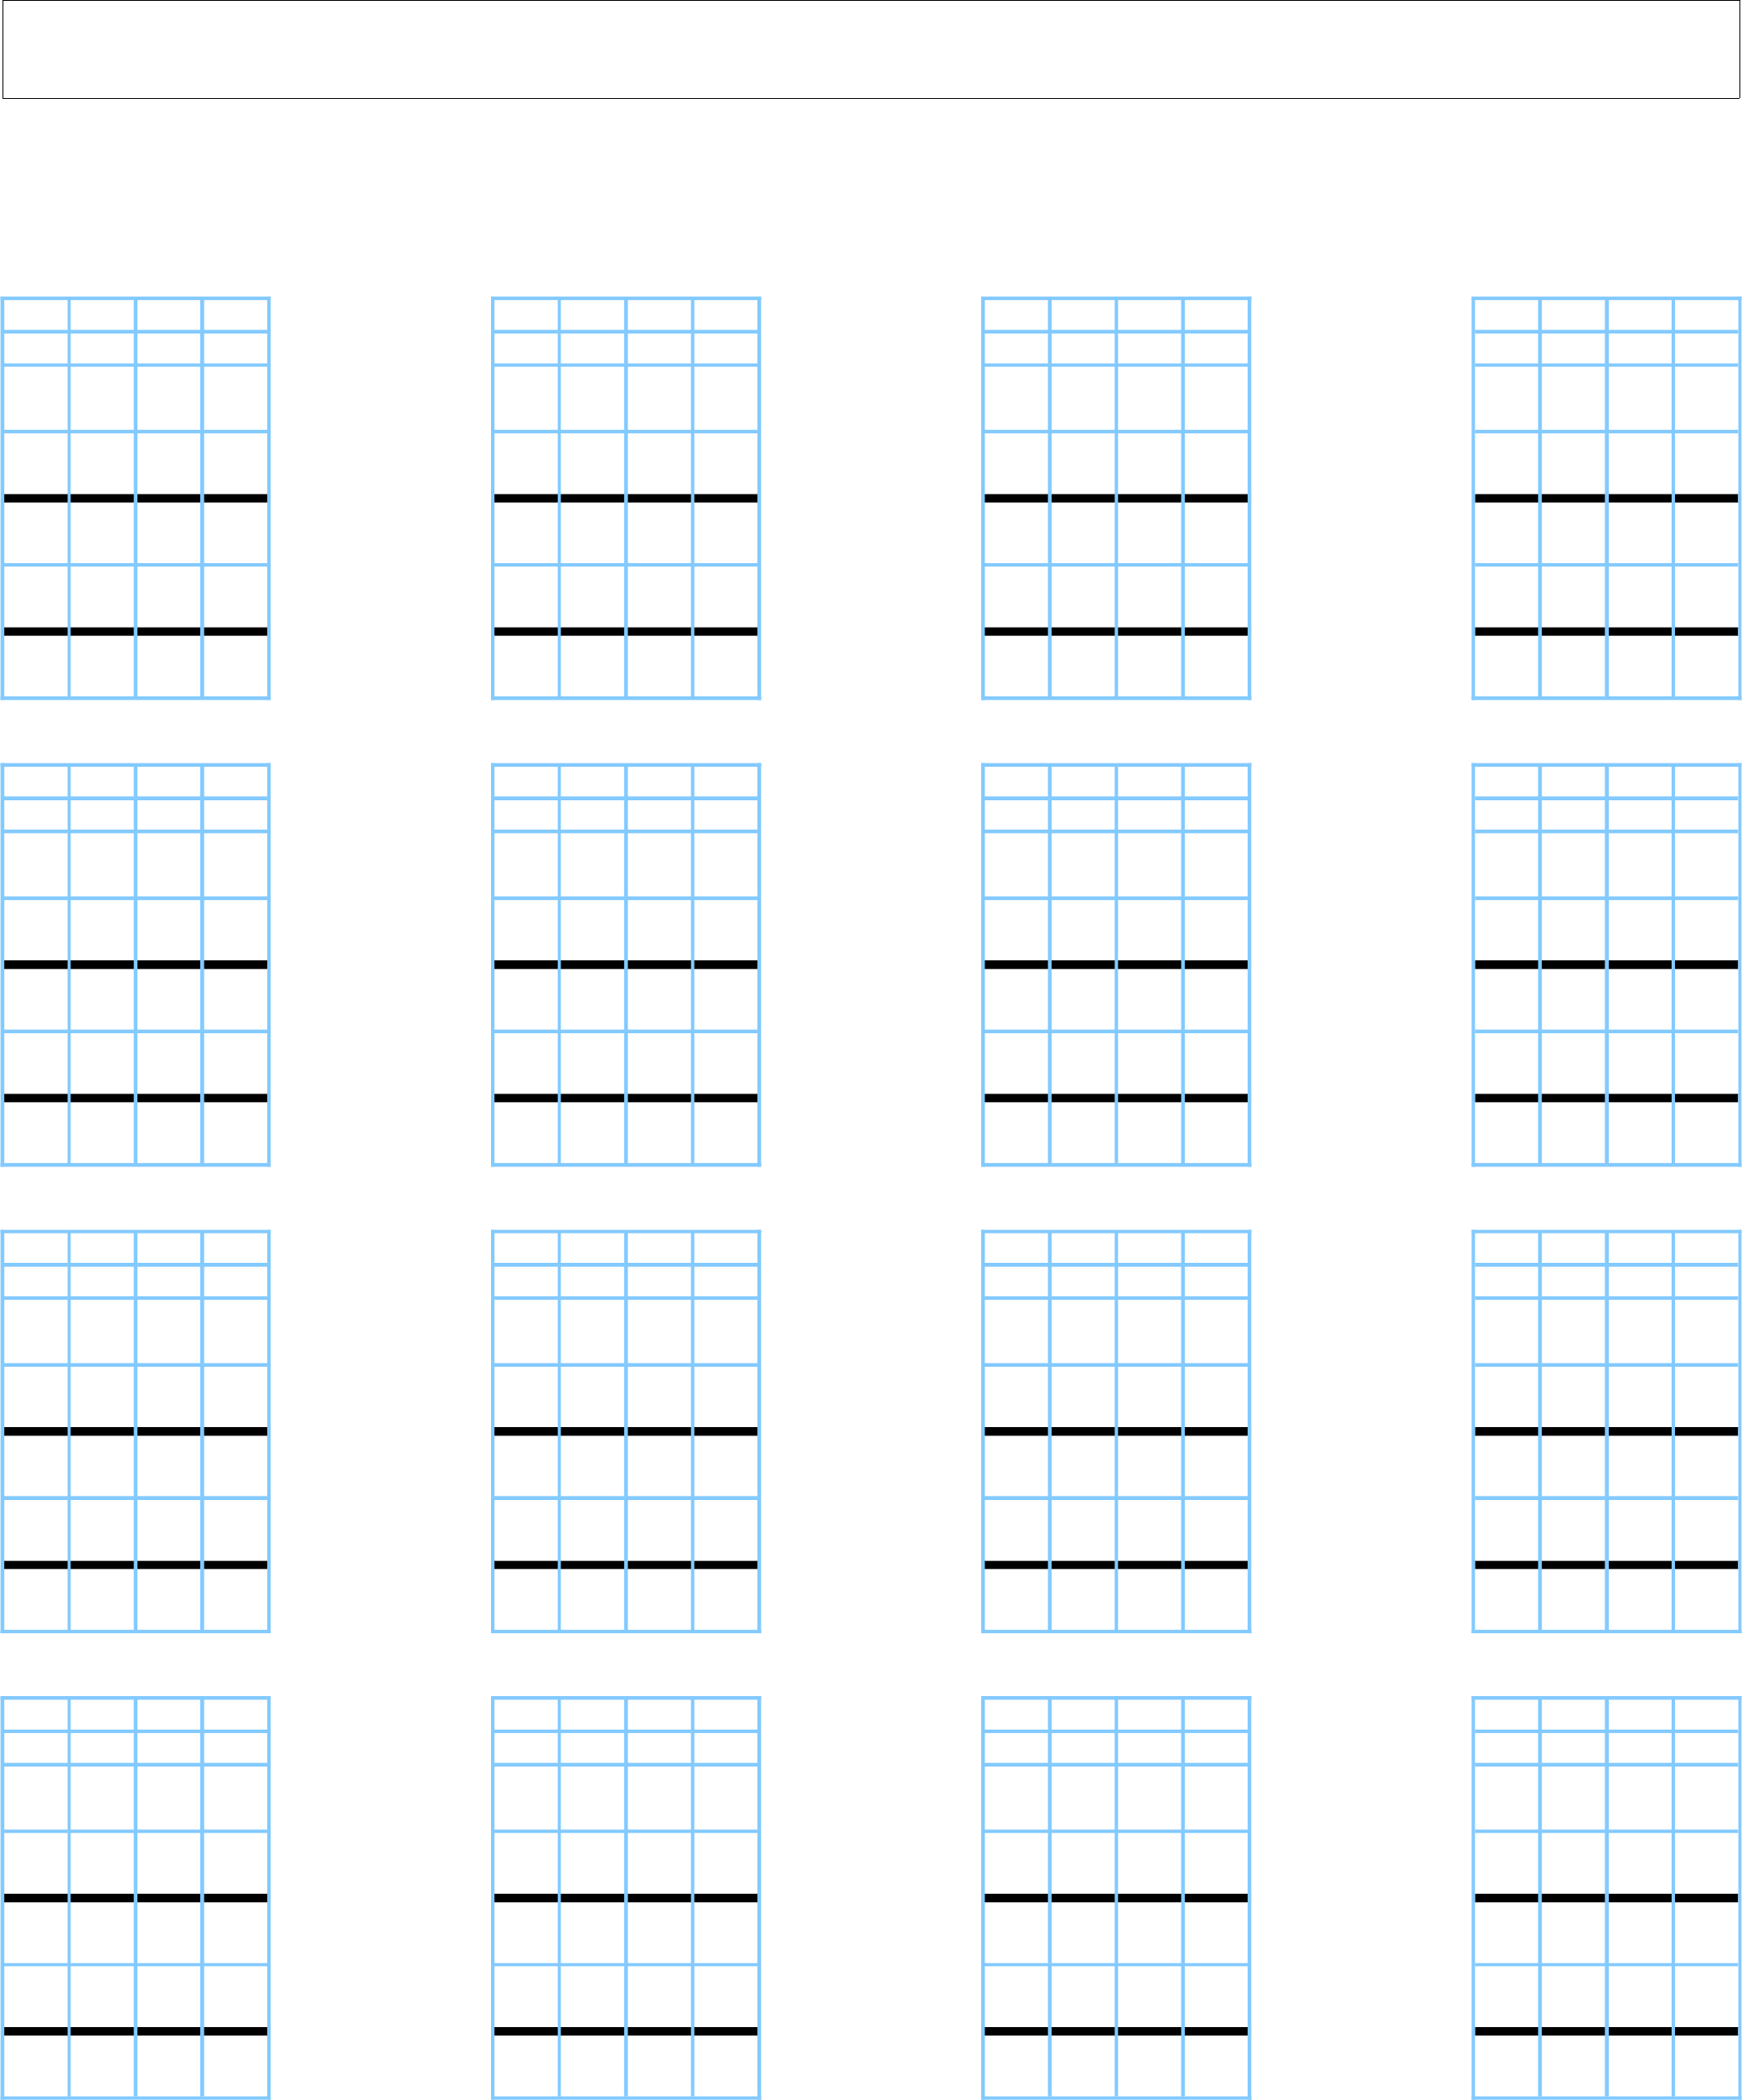 worksheet Grid Worksheets multiplication grids by 12 worksheets multiplying 2 digits free 3rd grade bg1 worksheetshtml multiplication